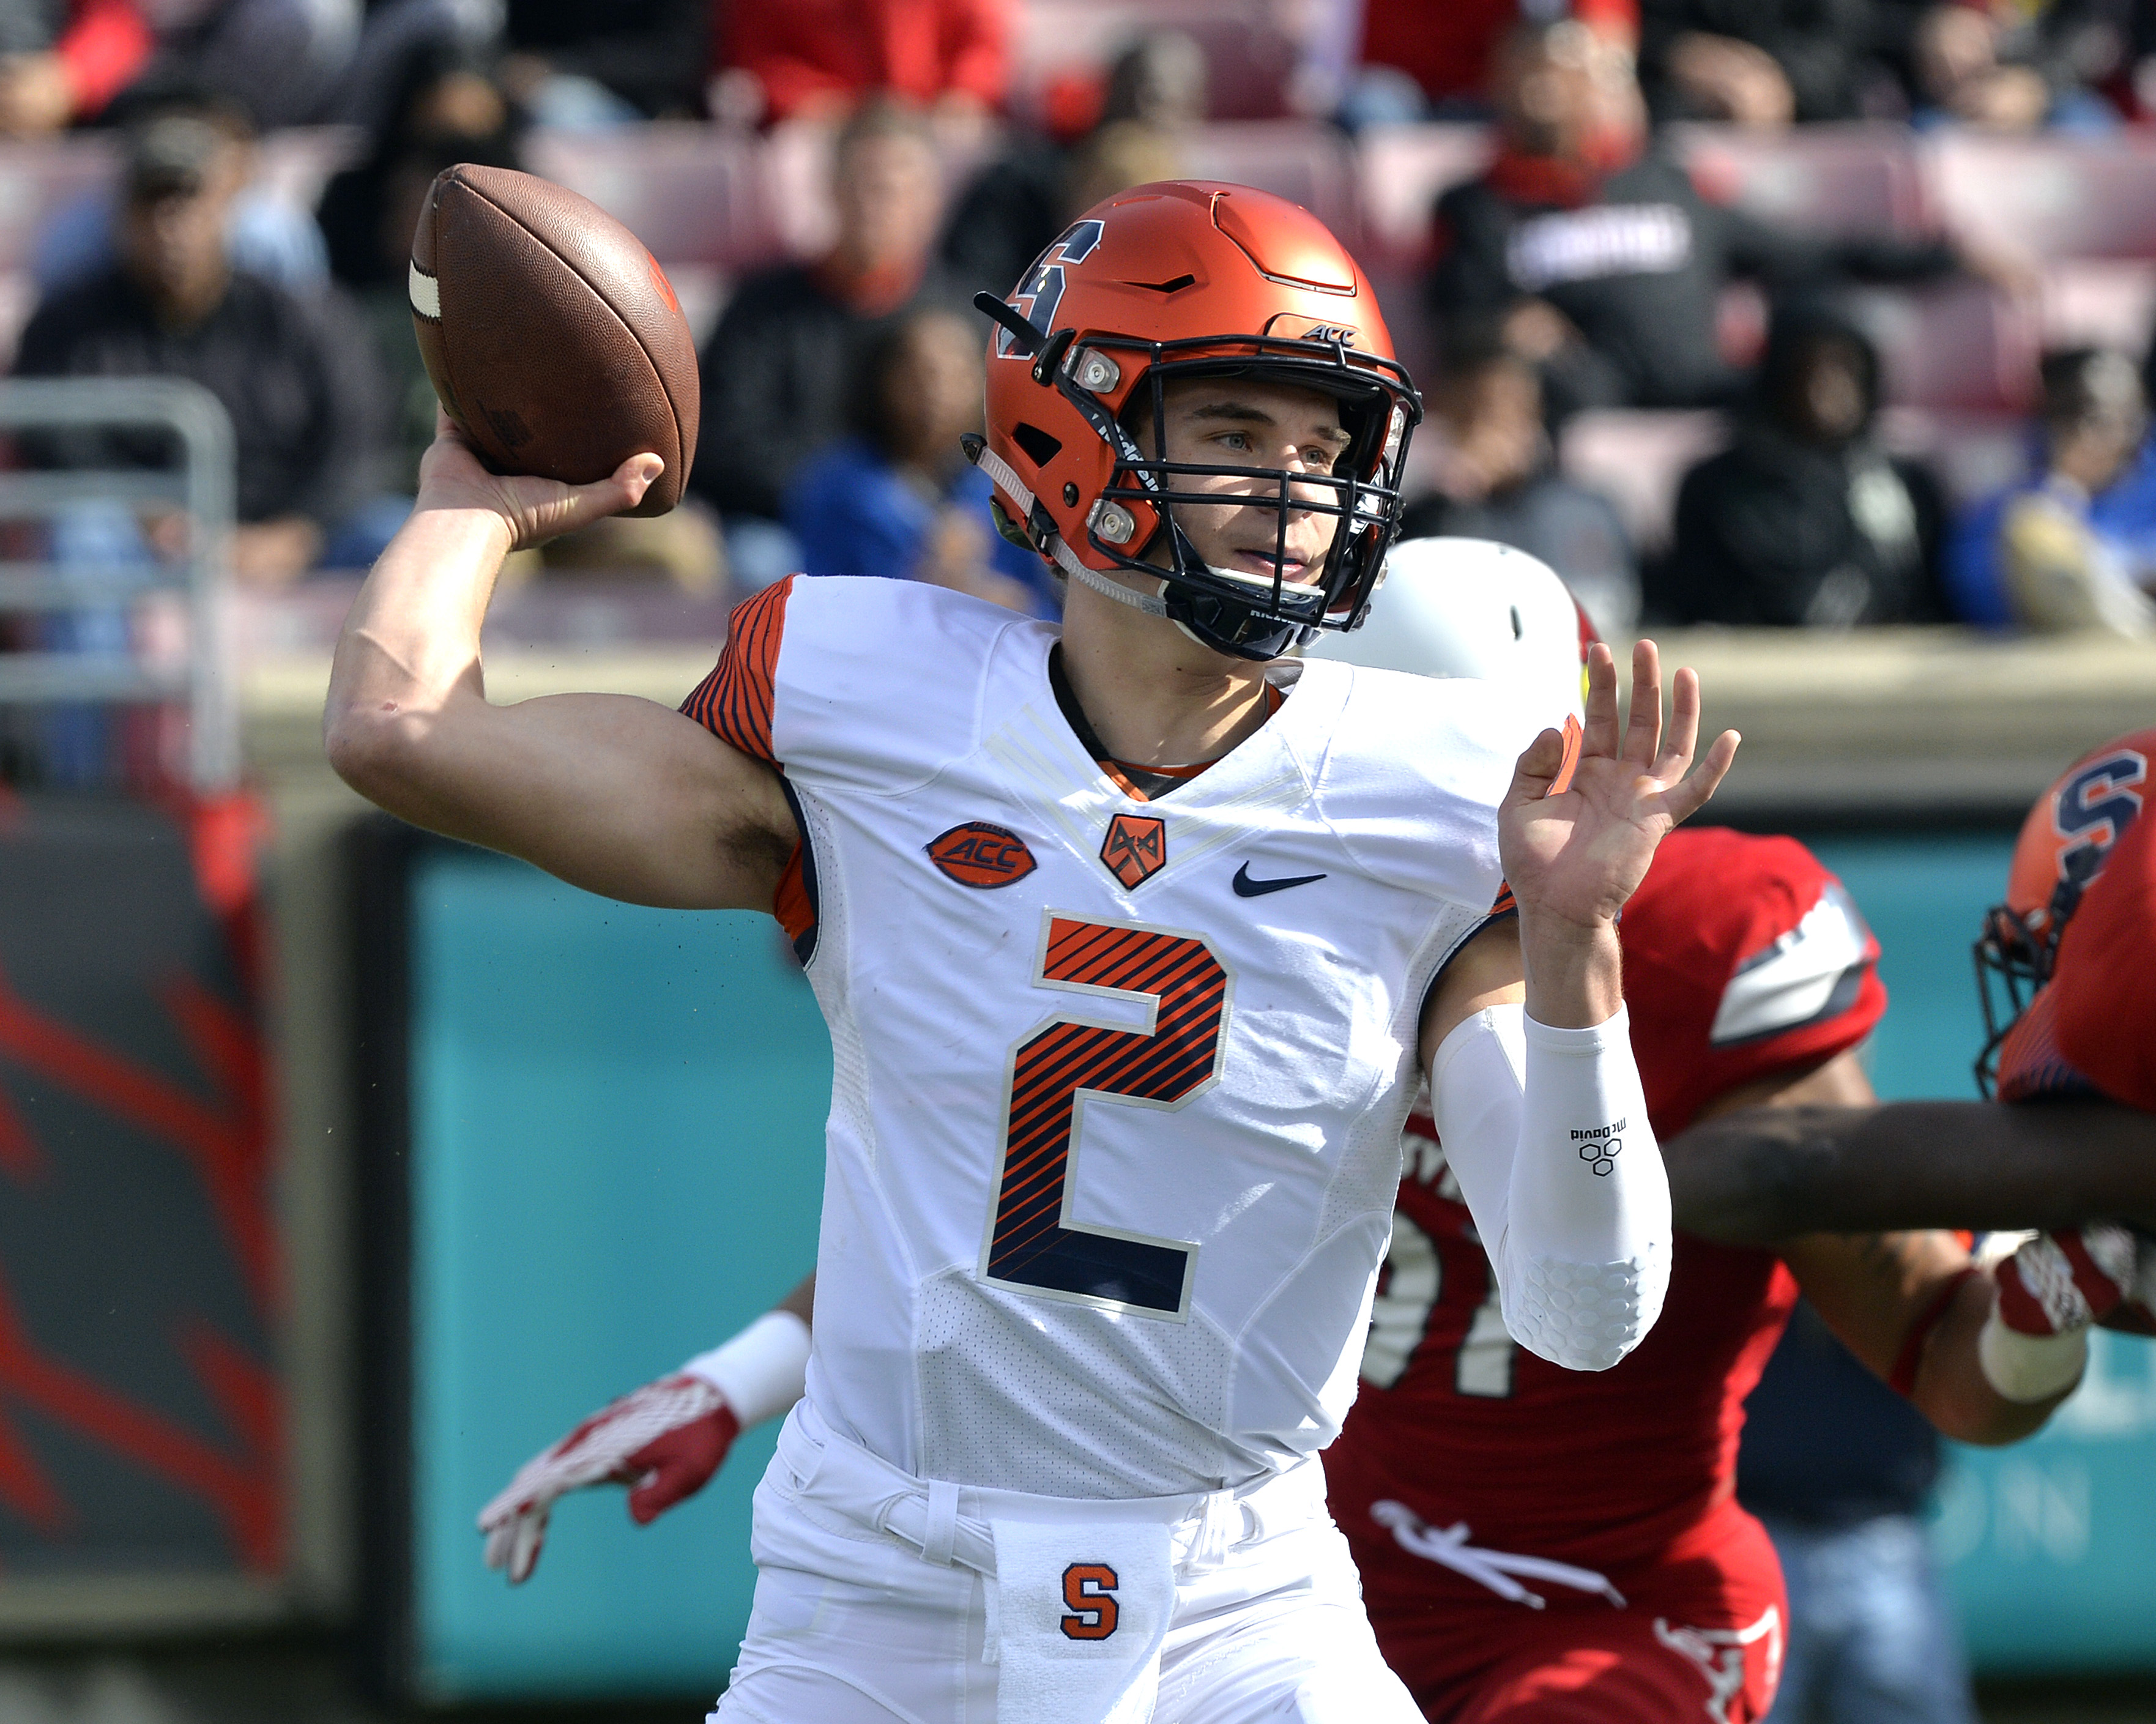 Syracuse quarterback Eric Dungey (2) attempts a pass during the first half of an NCAA college football game against Louisville, Saturday, Nov. 7, 2015, in Louisville, Ky. (AP Photo/Timothy D. Easley)